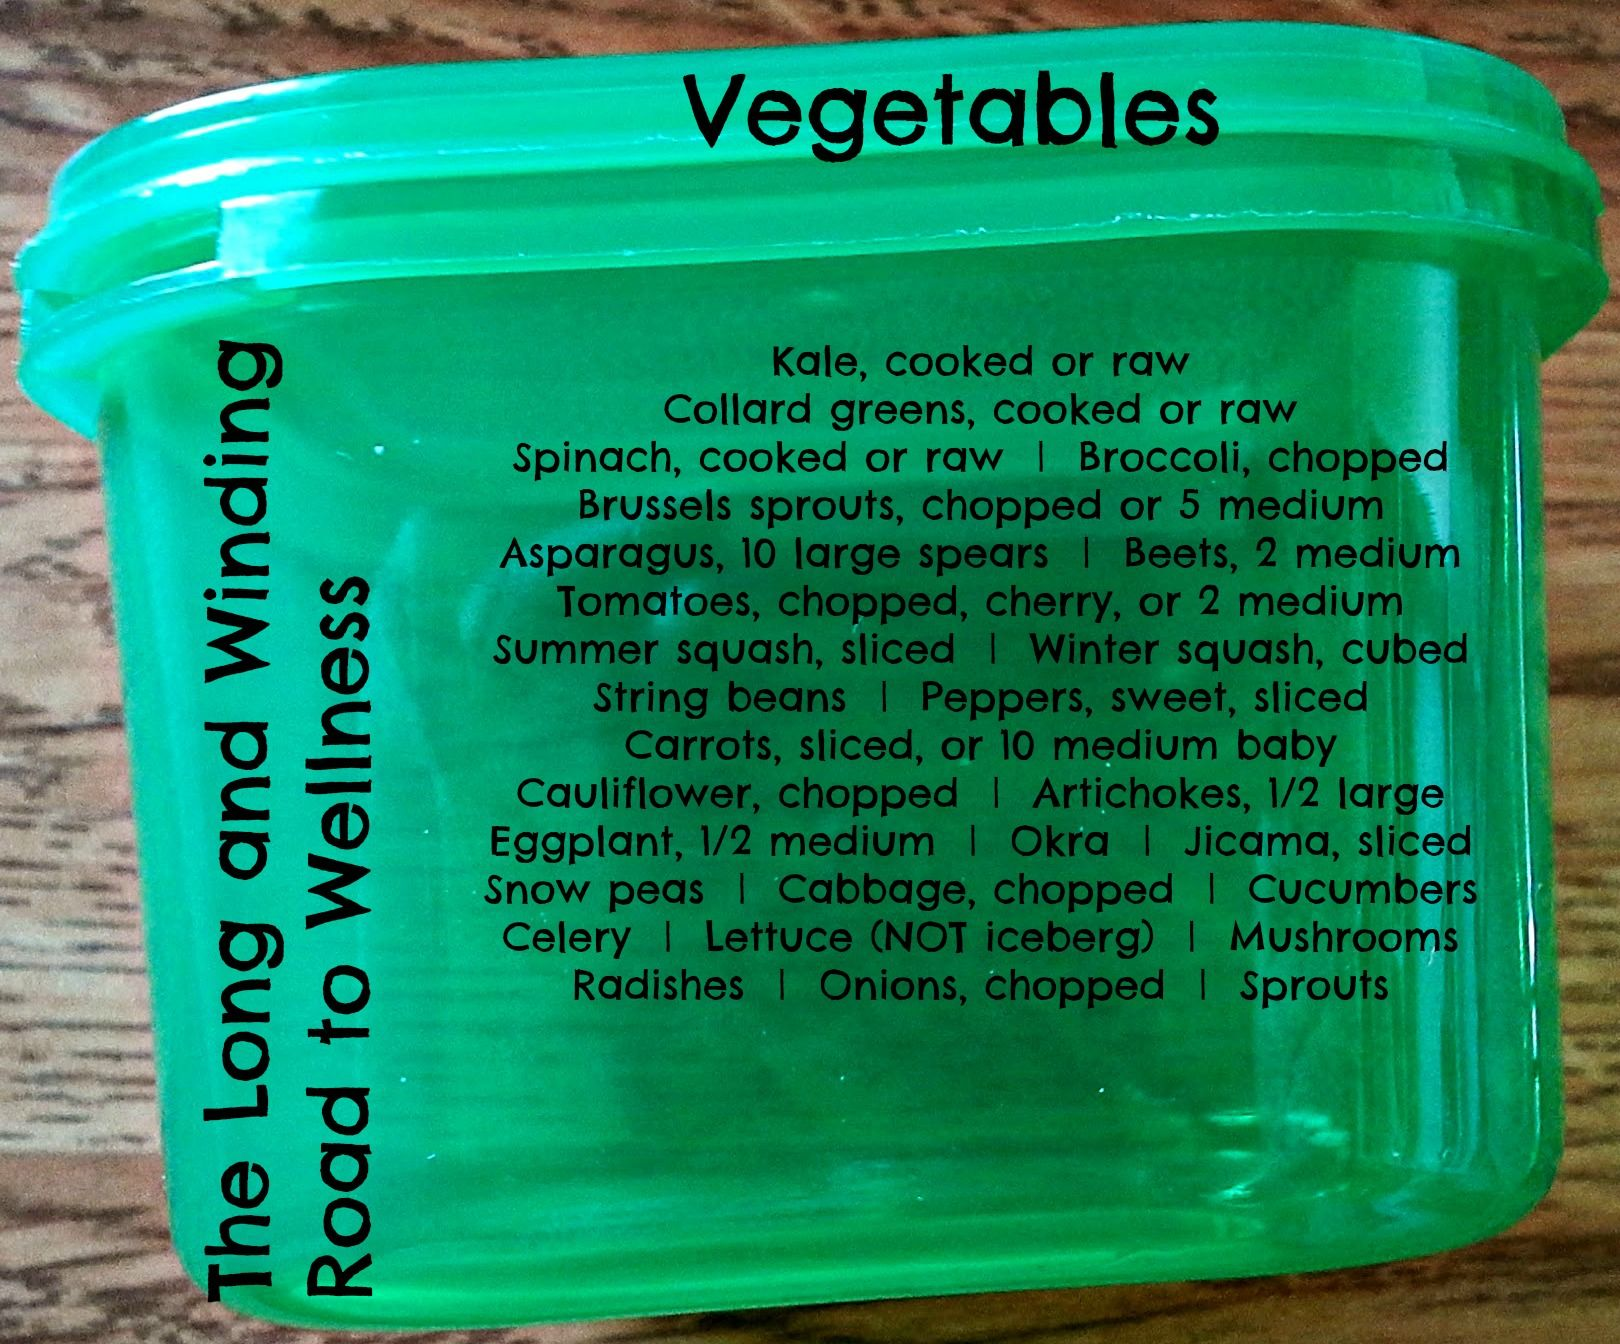 Green container vegetables 21dayfix 1 cup beachbody